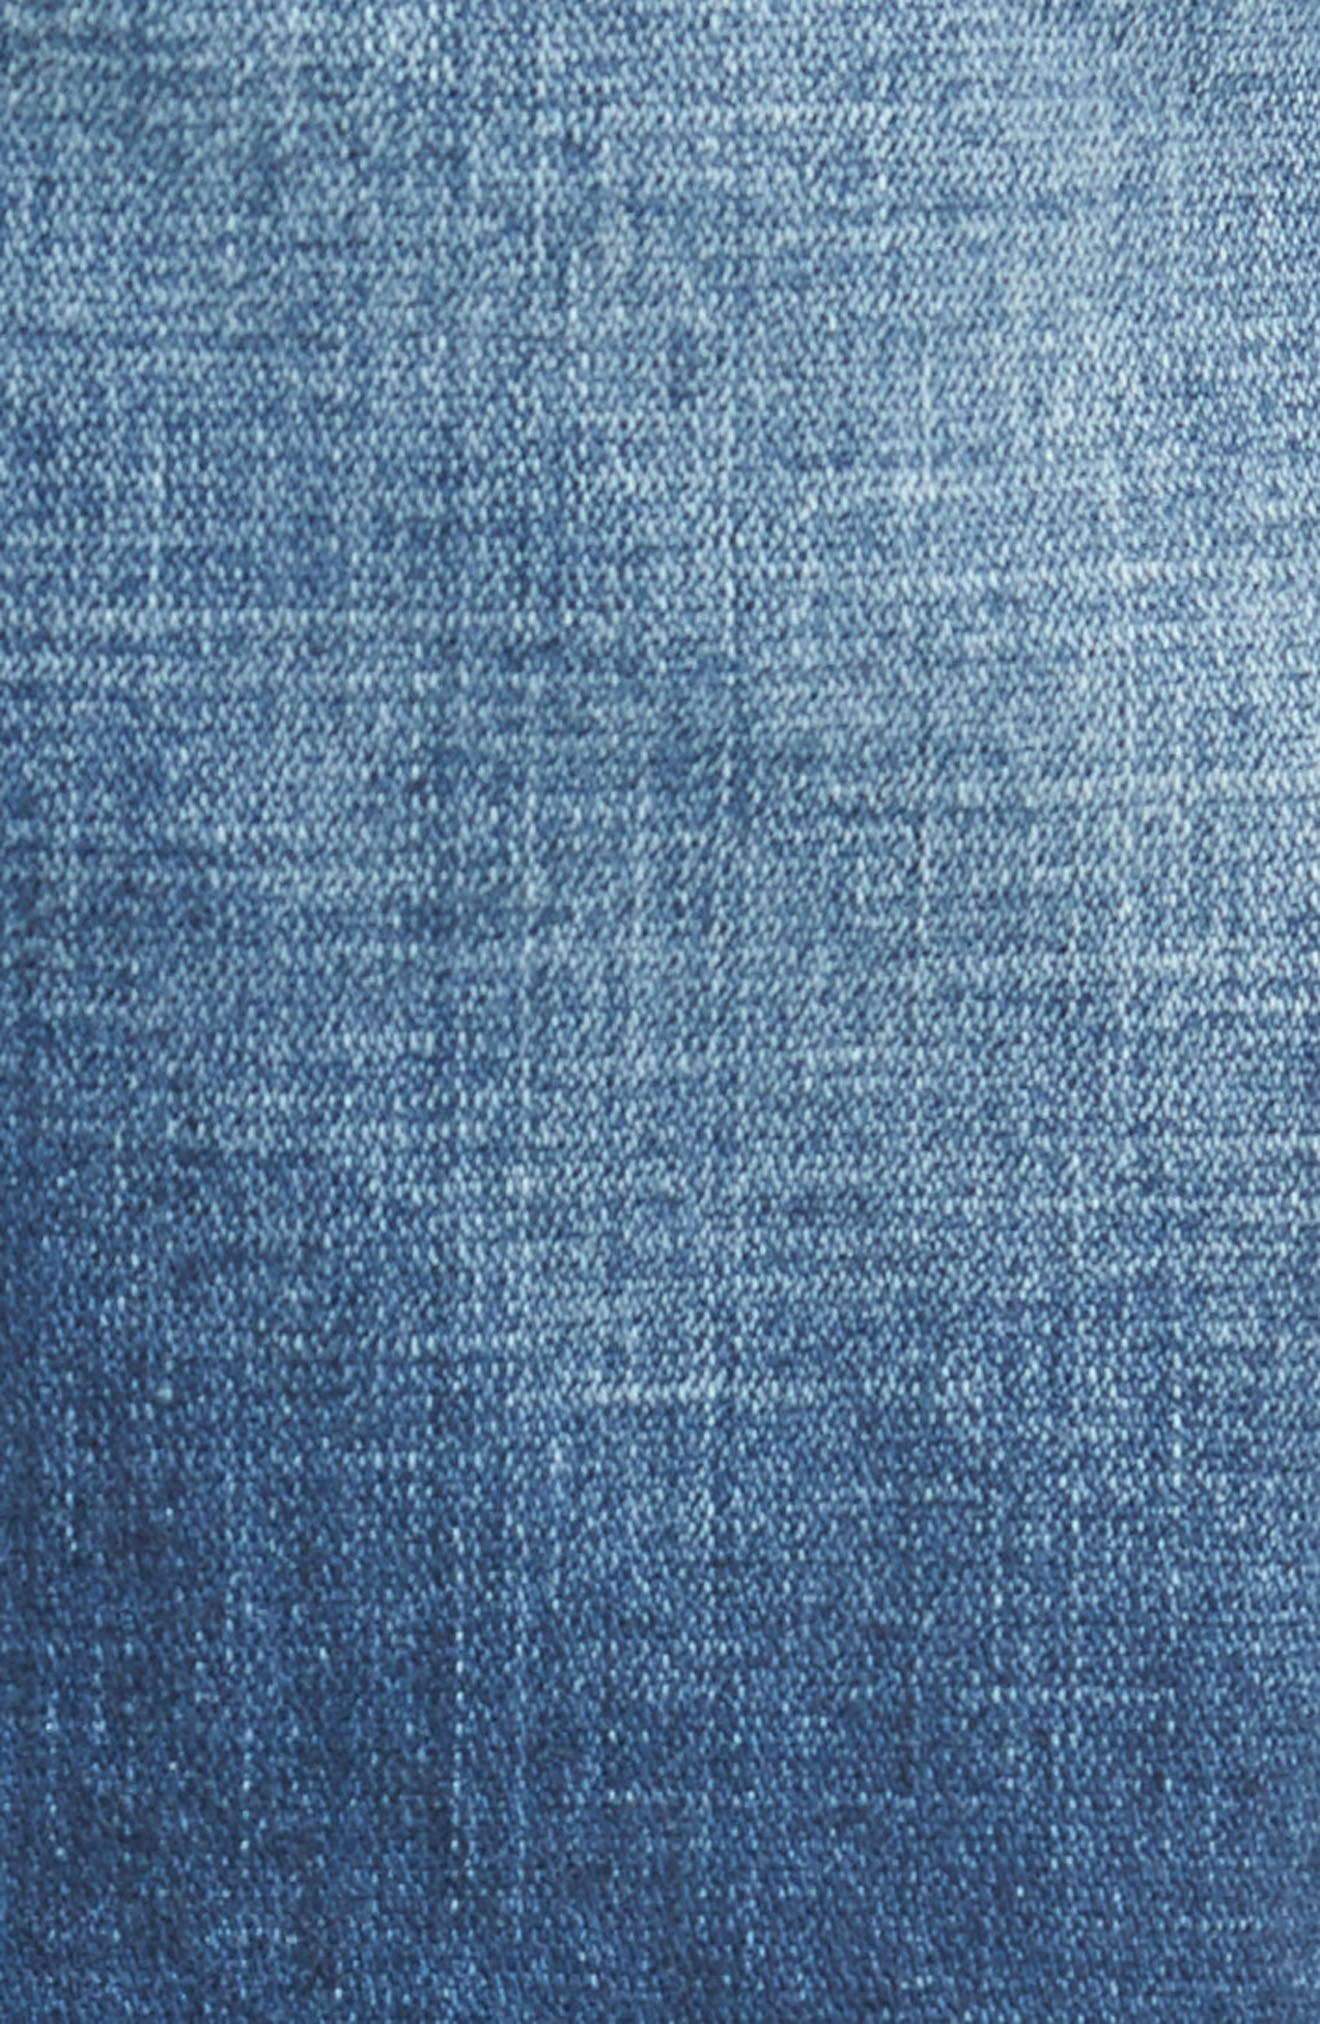 Ricky Relaxed Fit Jeans,                             Alternate thumbnail 6, color,                             Static Blue